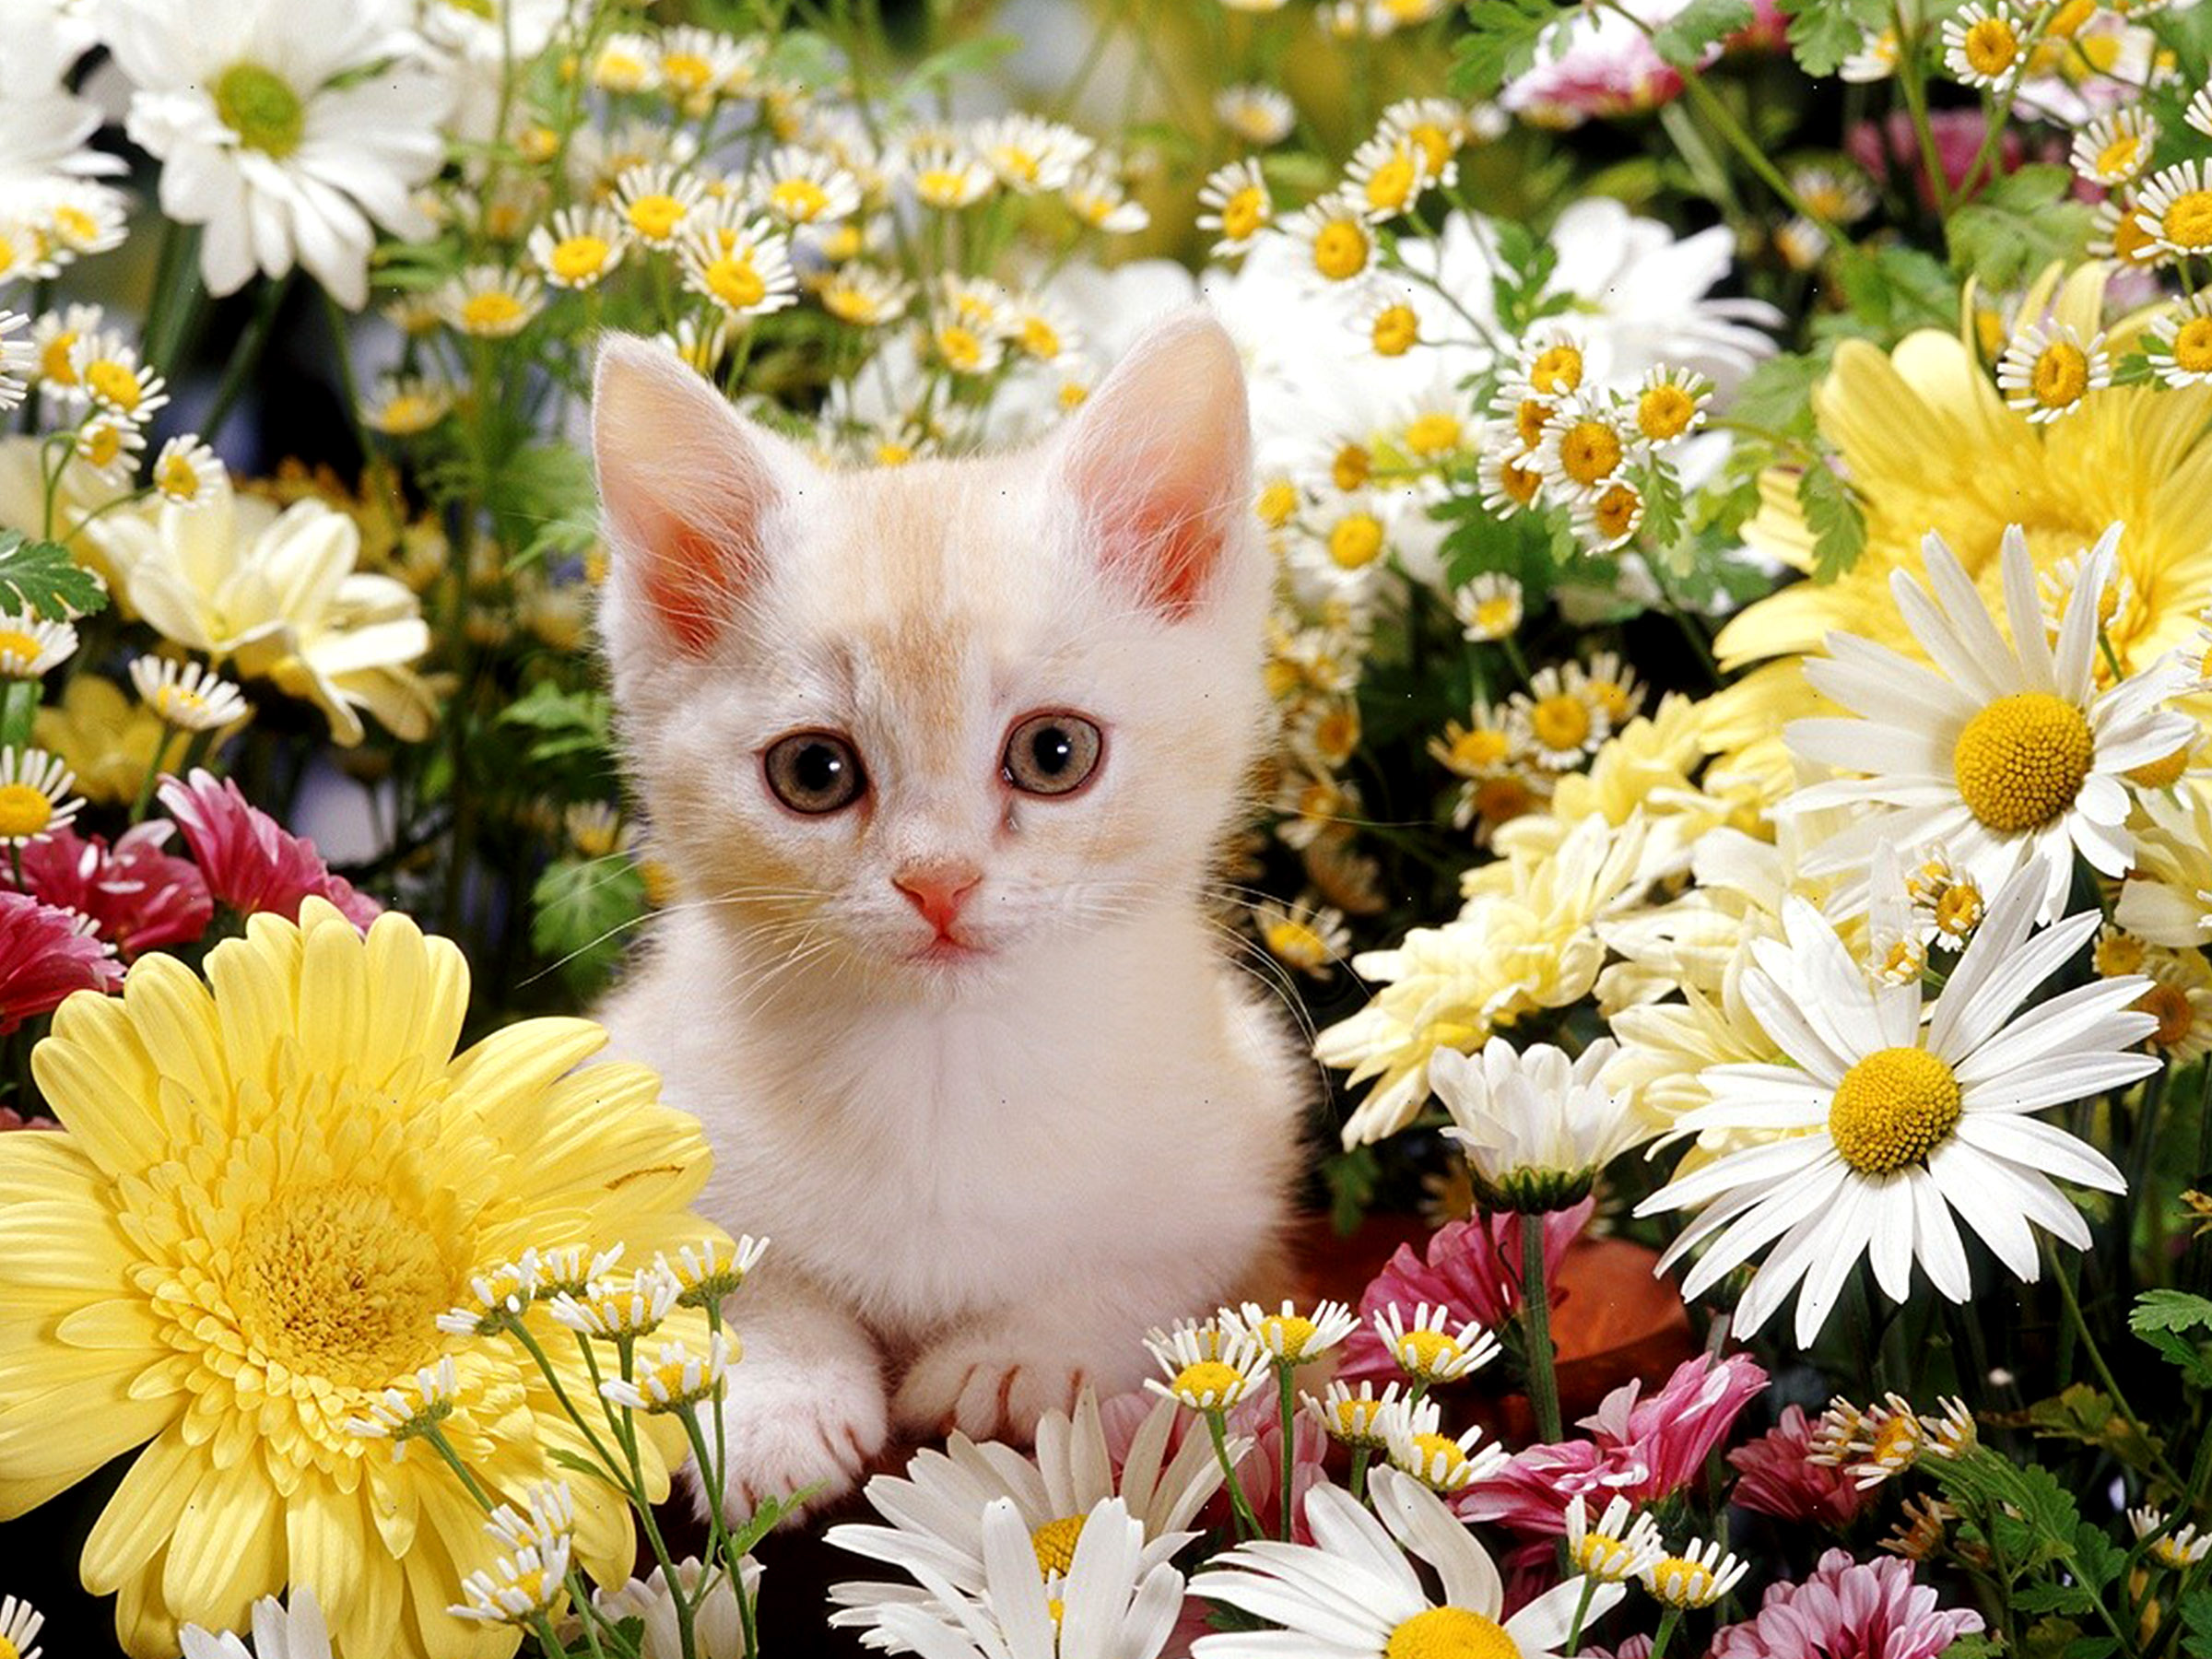 Kittens images kitties and flowers hd wallpaper and background kittens images kitties and flowers hd wallpaper and background photos izmirmasajfo